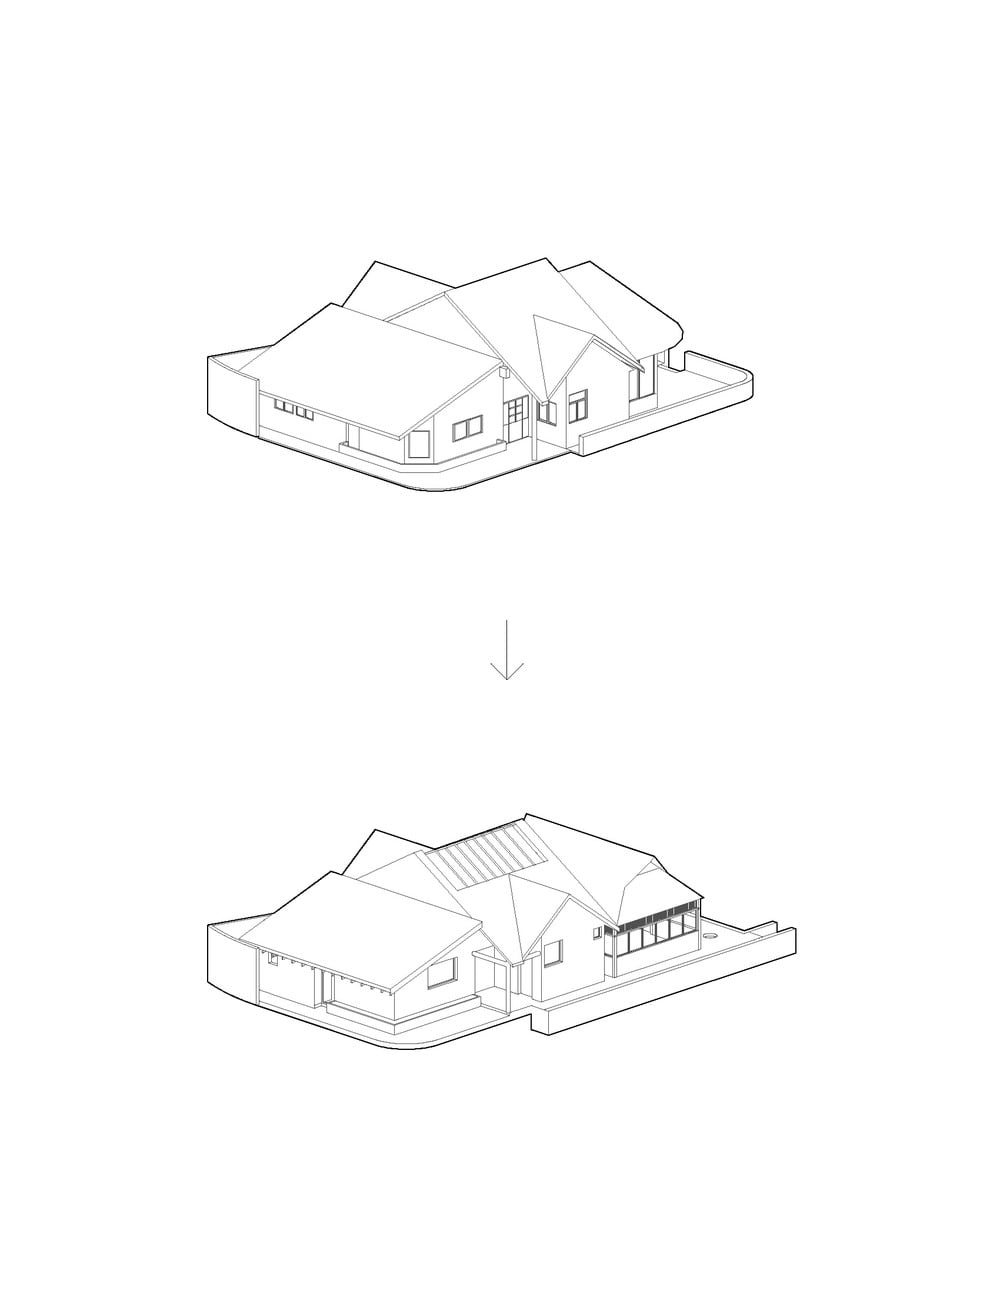 This is an illustration of the house depicting the structure renovated before and after the renovation.